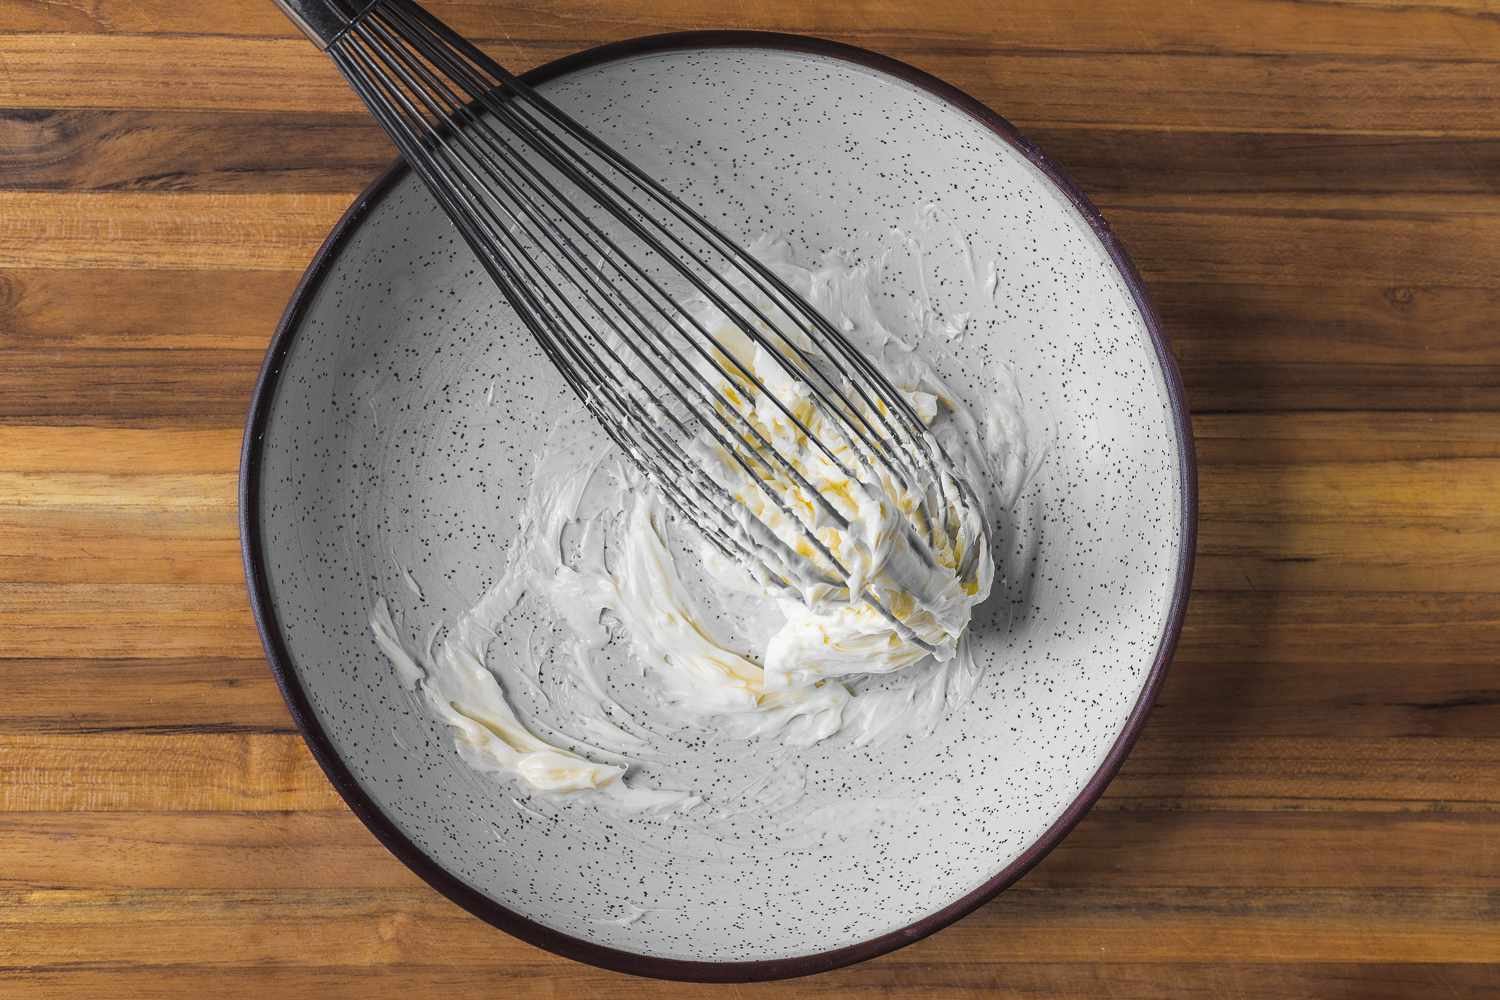 Beat the softened butter with garlic